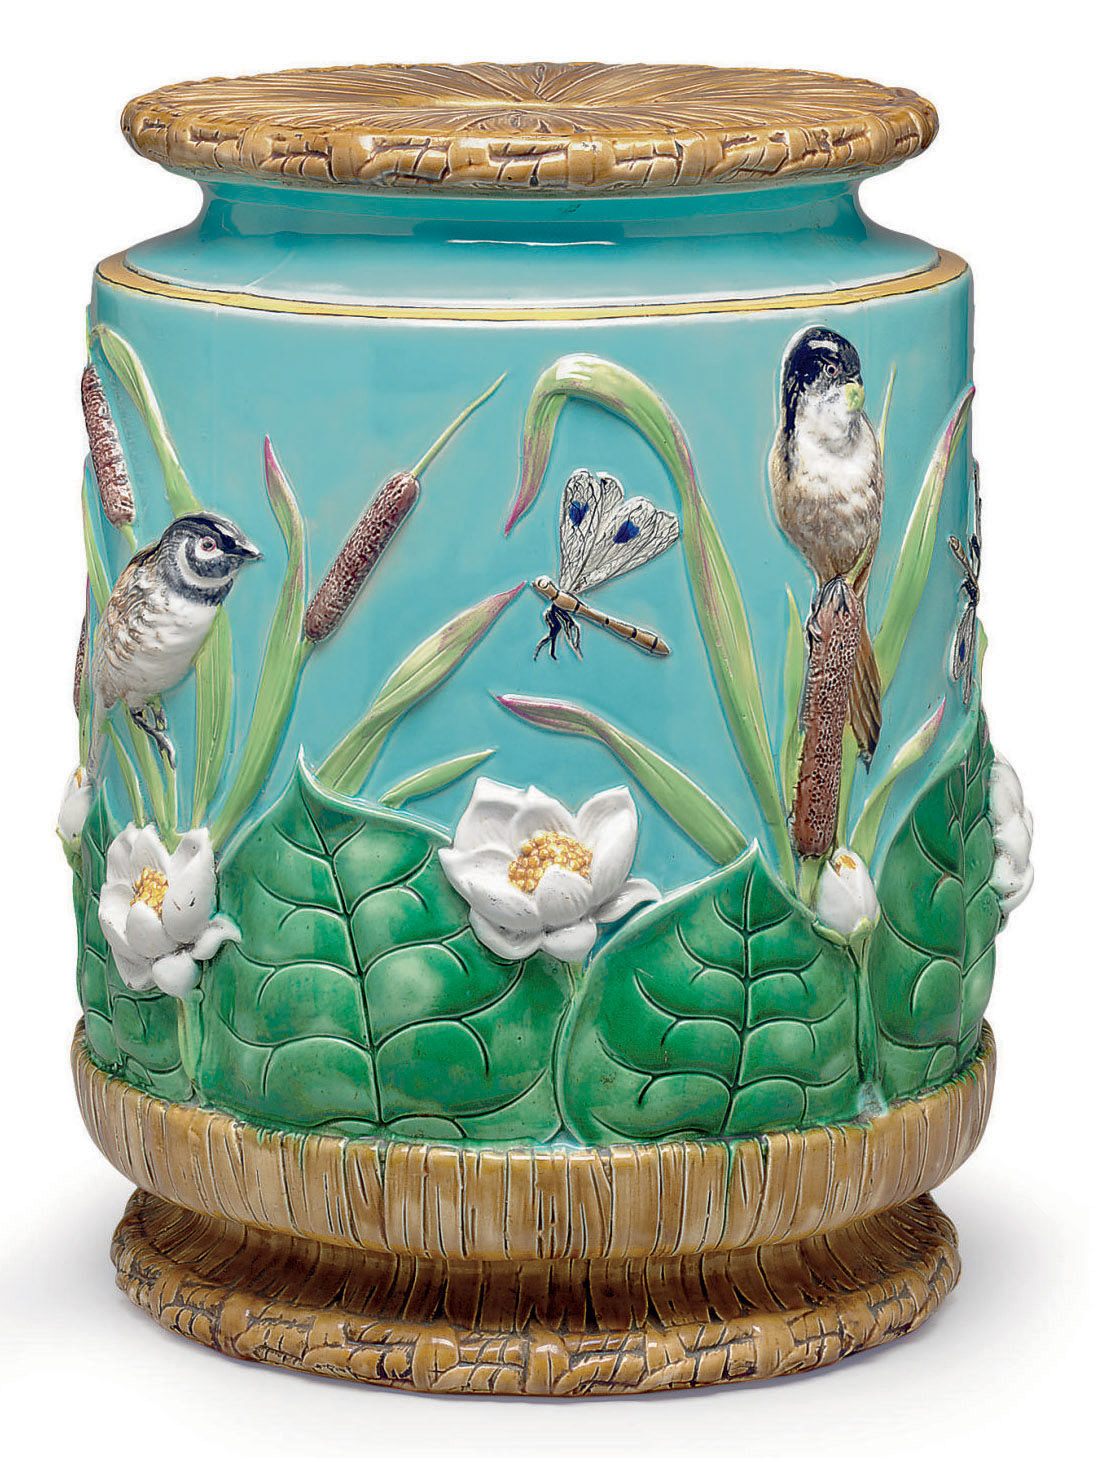 A GEORGE JONES TURQUOISE-GROUND MAJOLICA GARDEN SEAT